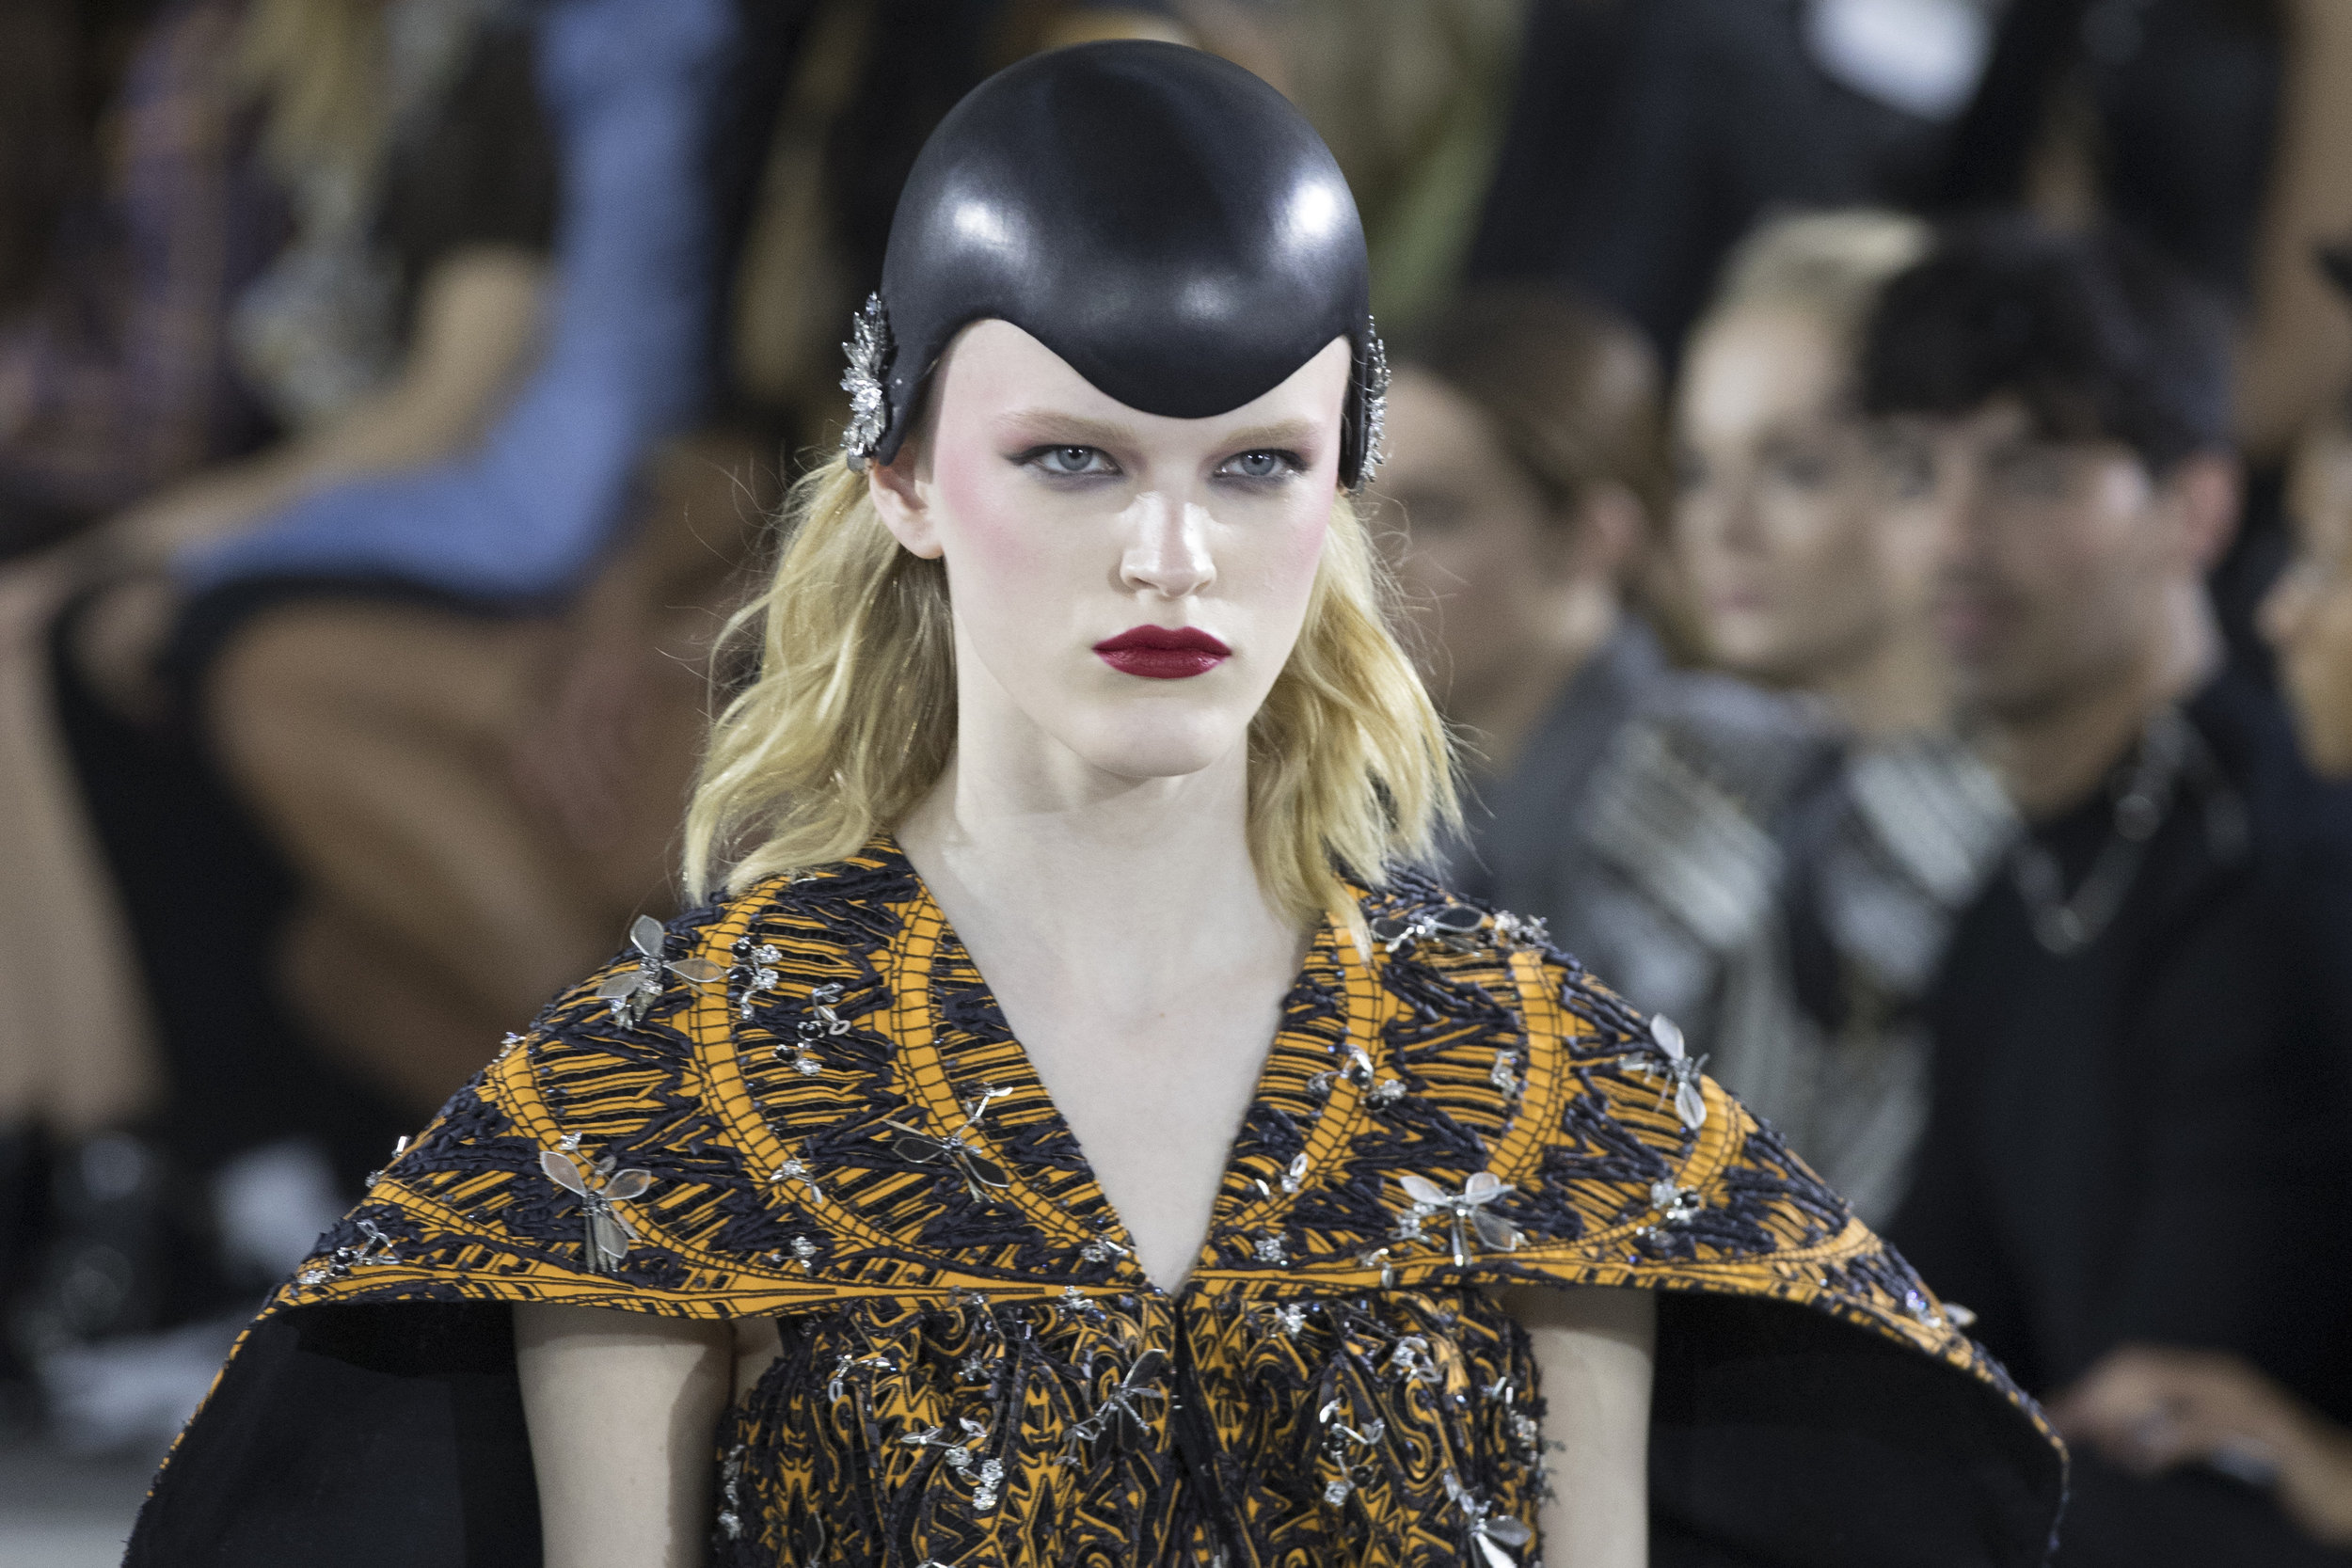 A model walks the runway during the Louis Vuitton Cruise 2020 collection presentation at Kennedy Airport, on May 8. AP Photos/Mary Altaffer.